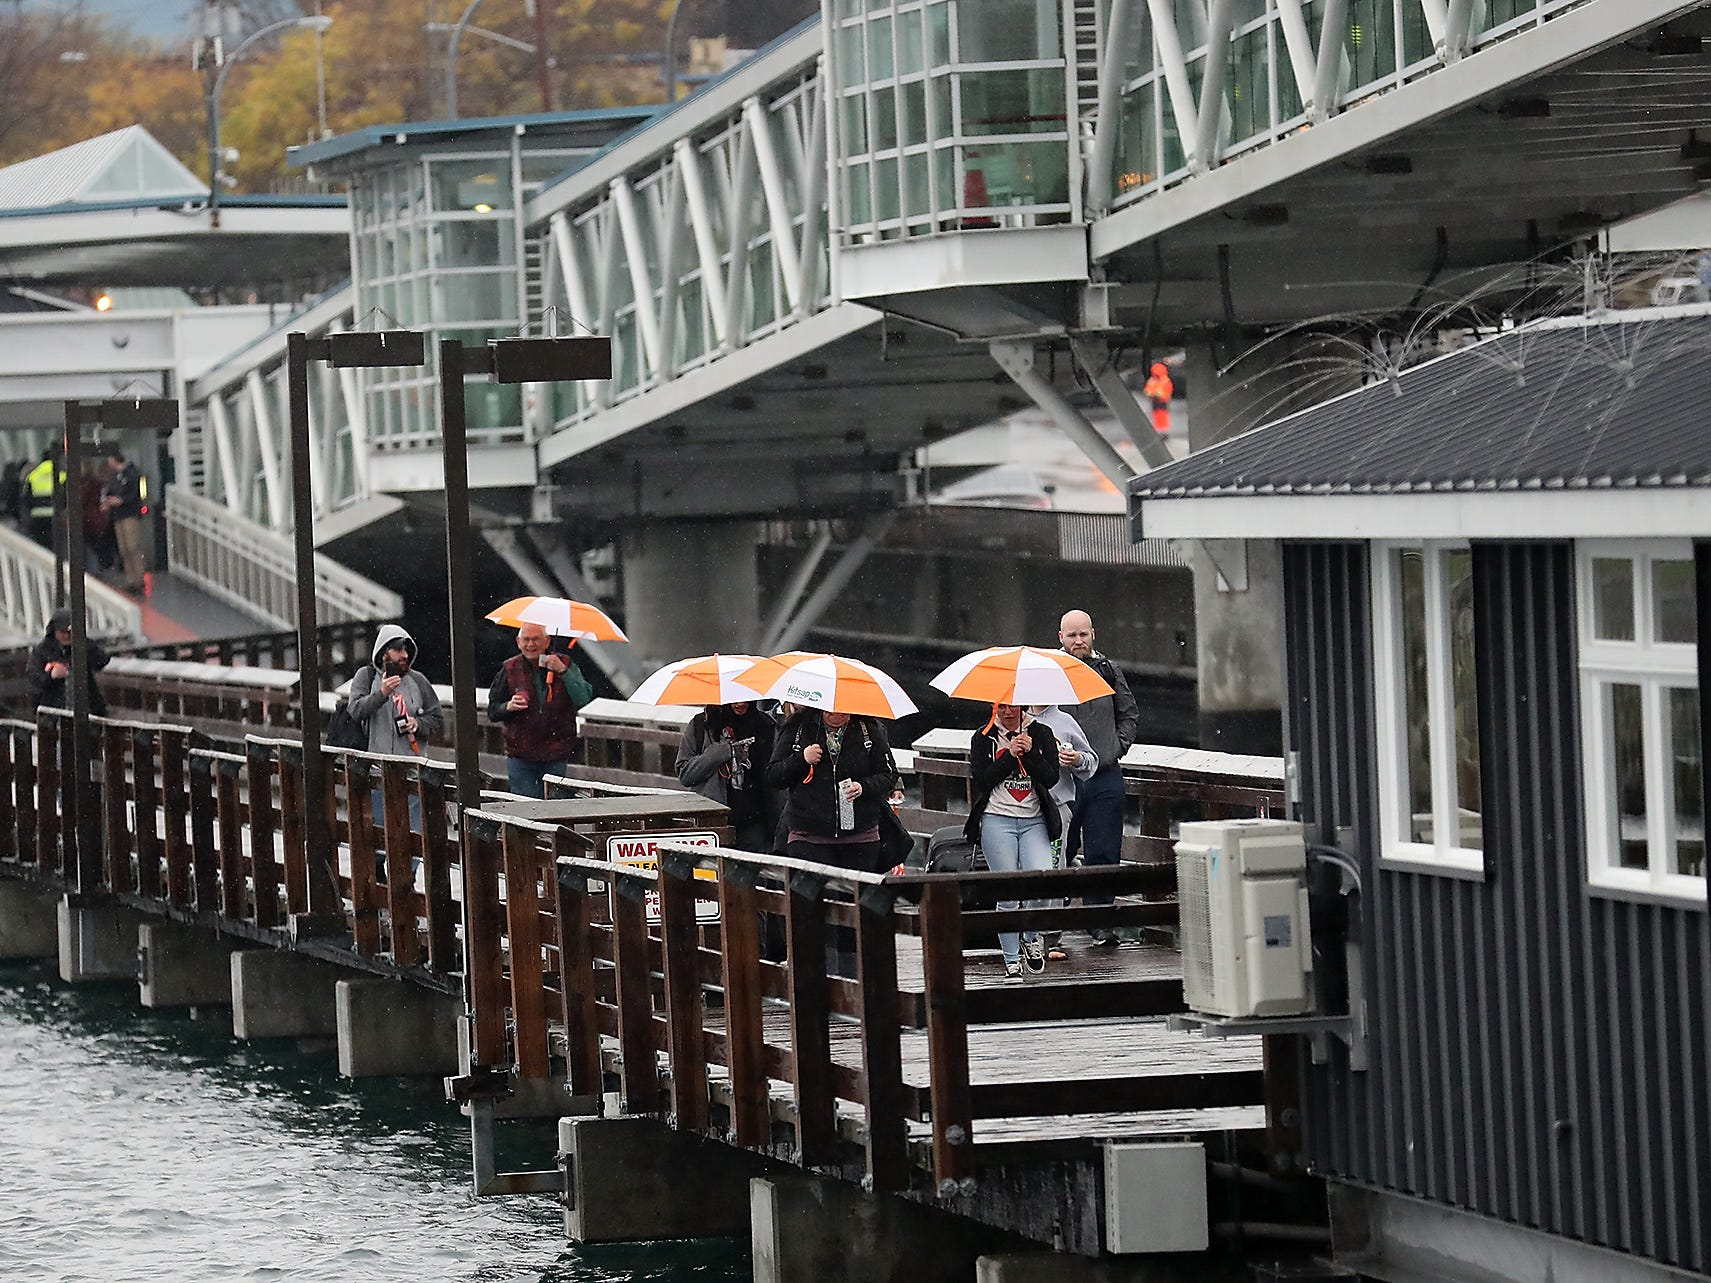 Ferry passengers tote complimentary  Kitsap Transit umbrellas as they head for the 8:45am Fast Ferry sailing from Kingston to Seattle on Monday, November 26, 2018.